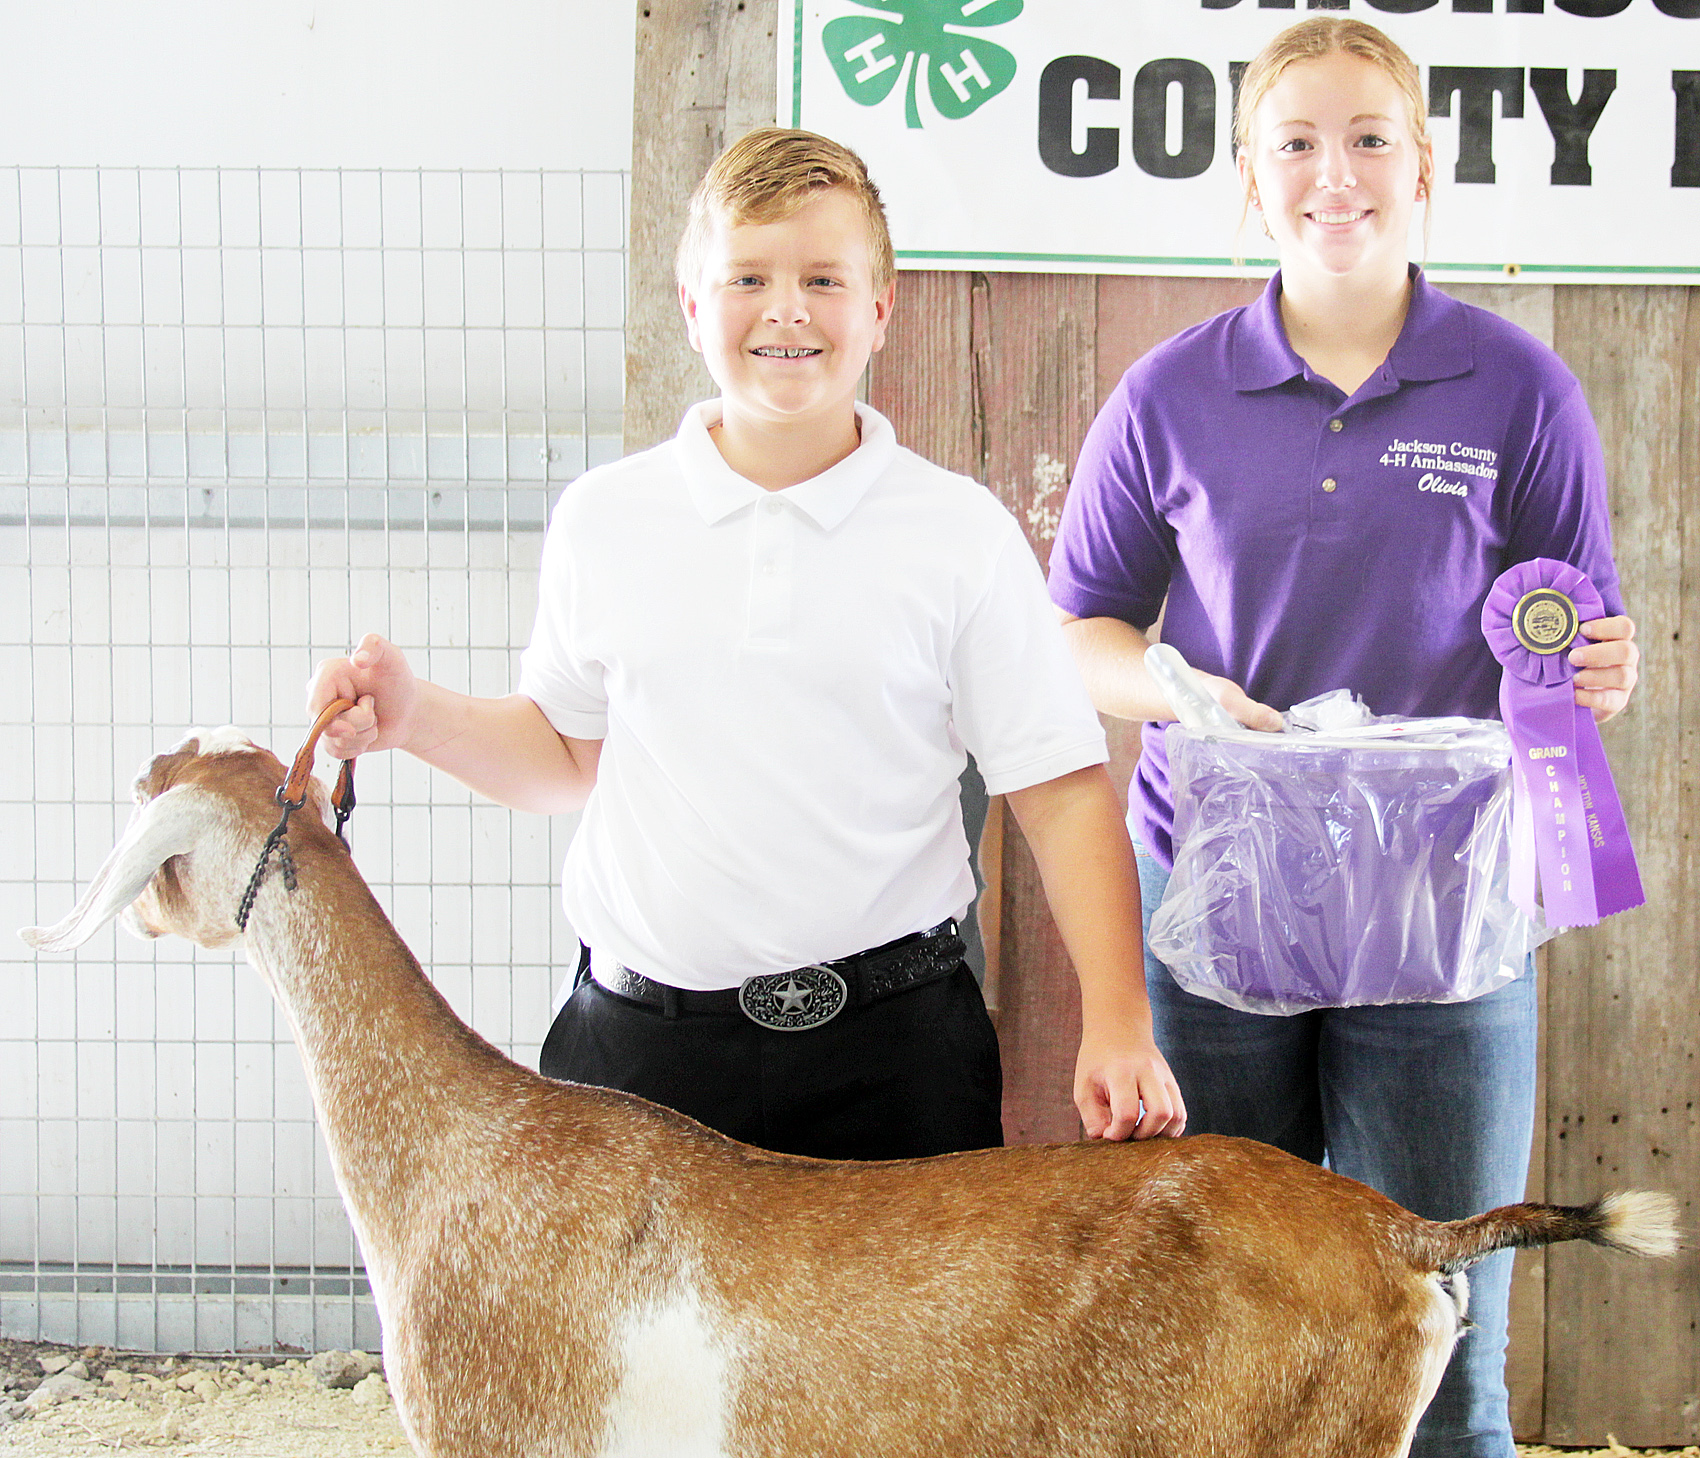 Tristan Simpson-Worley of the Ontario Busy Bees 4-H Club was named champion intermediate dairy goat showman at the 2020 Jackson County Fair.